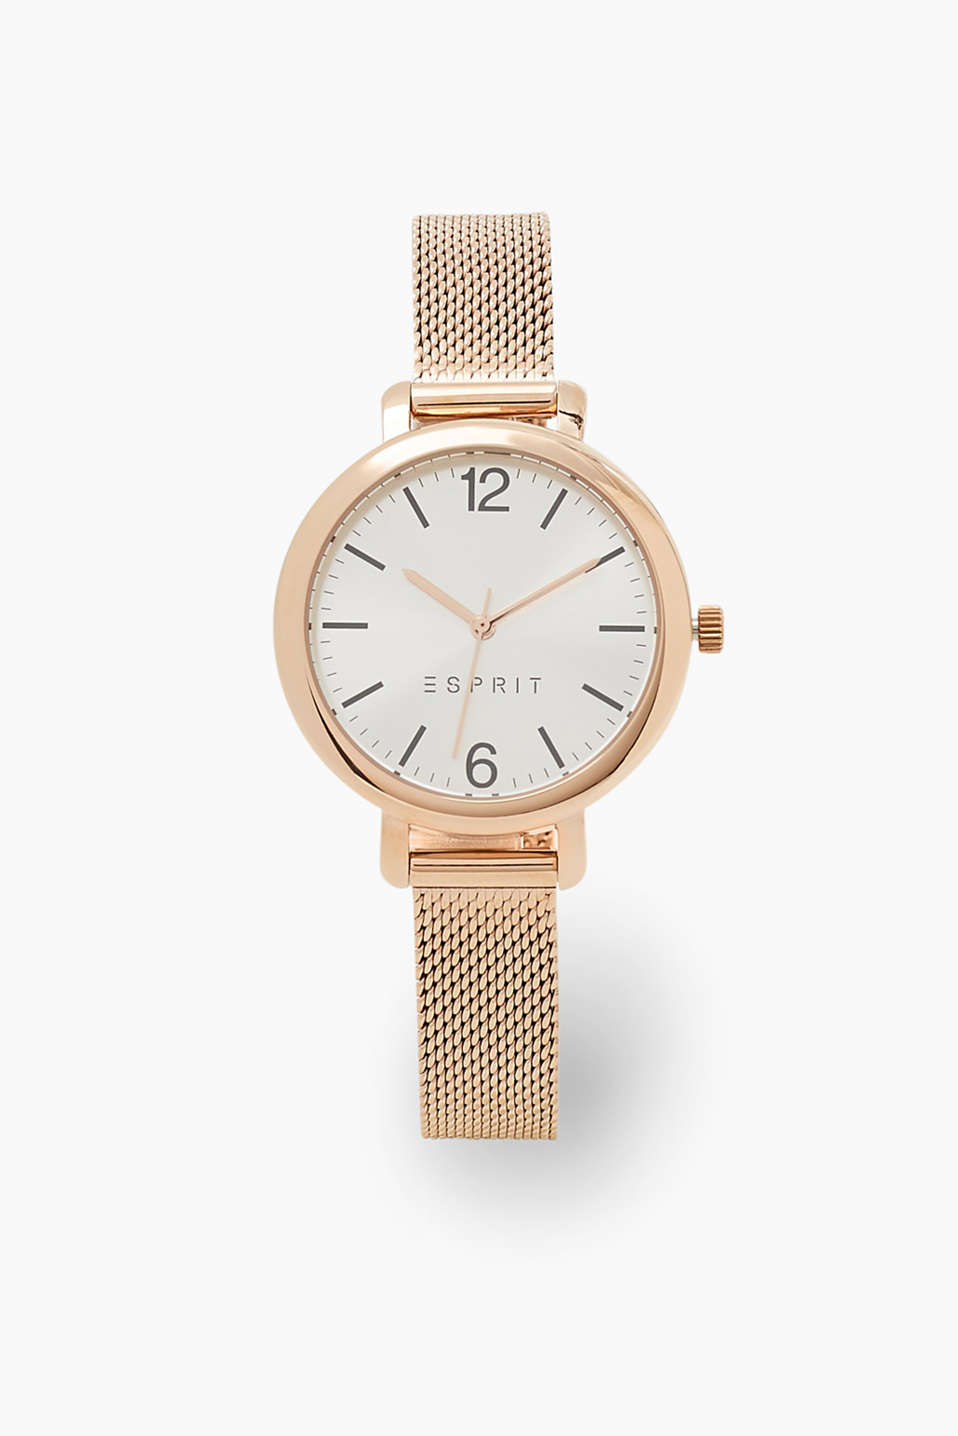 Watch in a trendy rose gold tone and a timeless, minimalist design